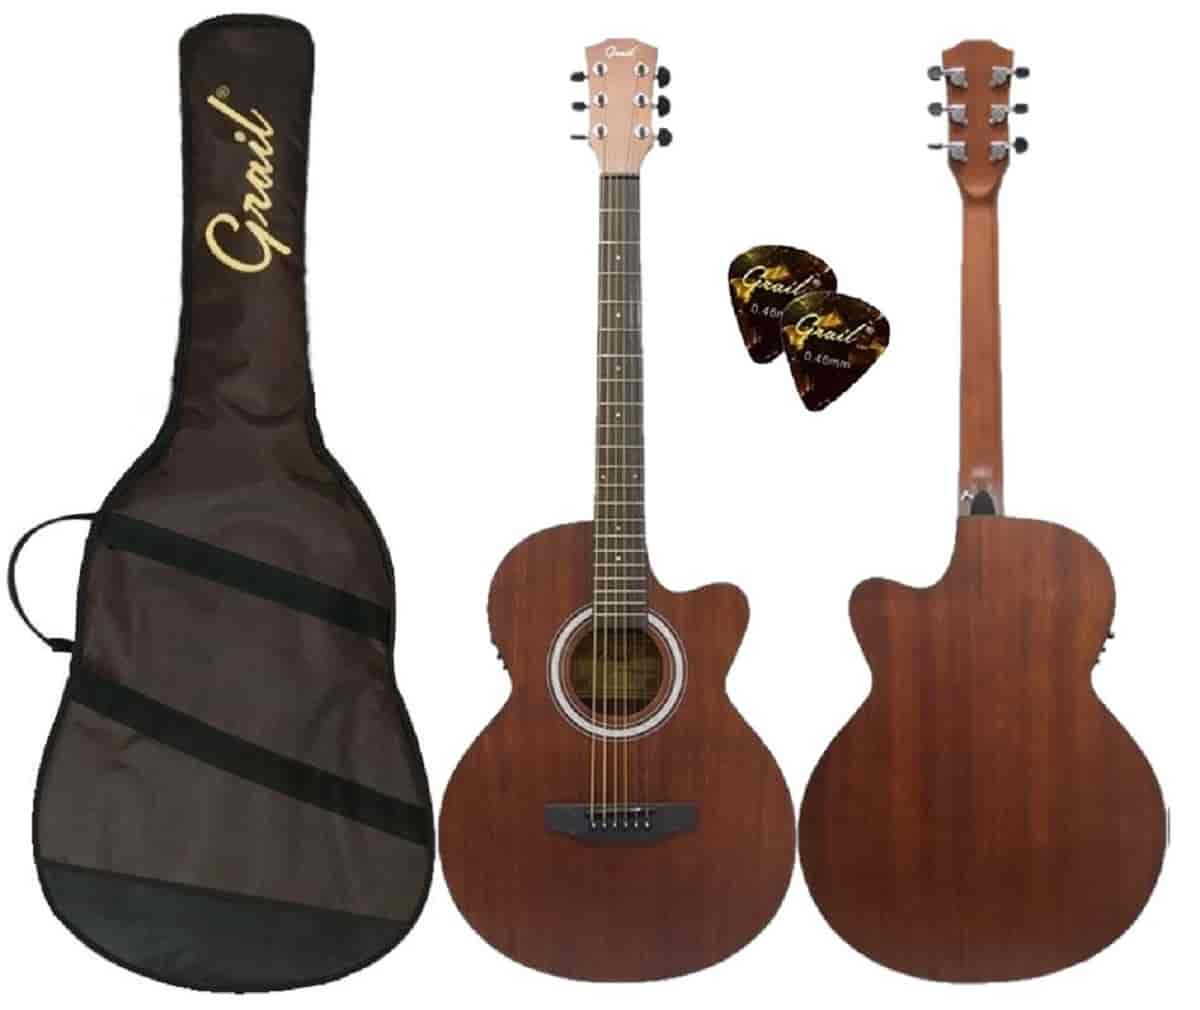 Grail Allure A190CE SAS Semi Acoustic Guitar Cutaway All Sapele (FREE Water Resistant Padded Gig Bag & 2 Picks)